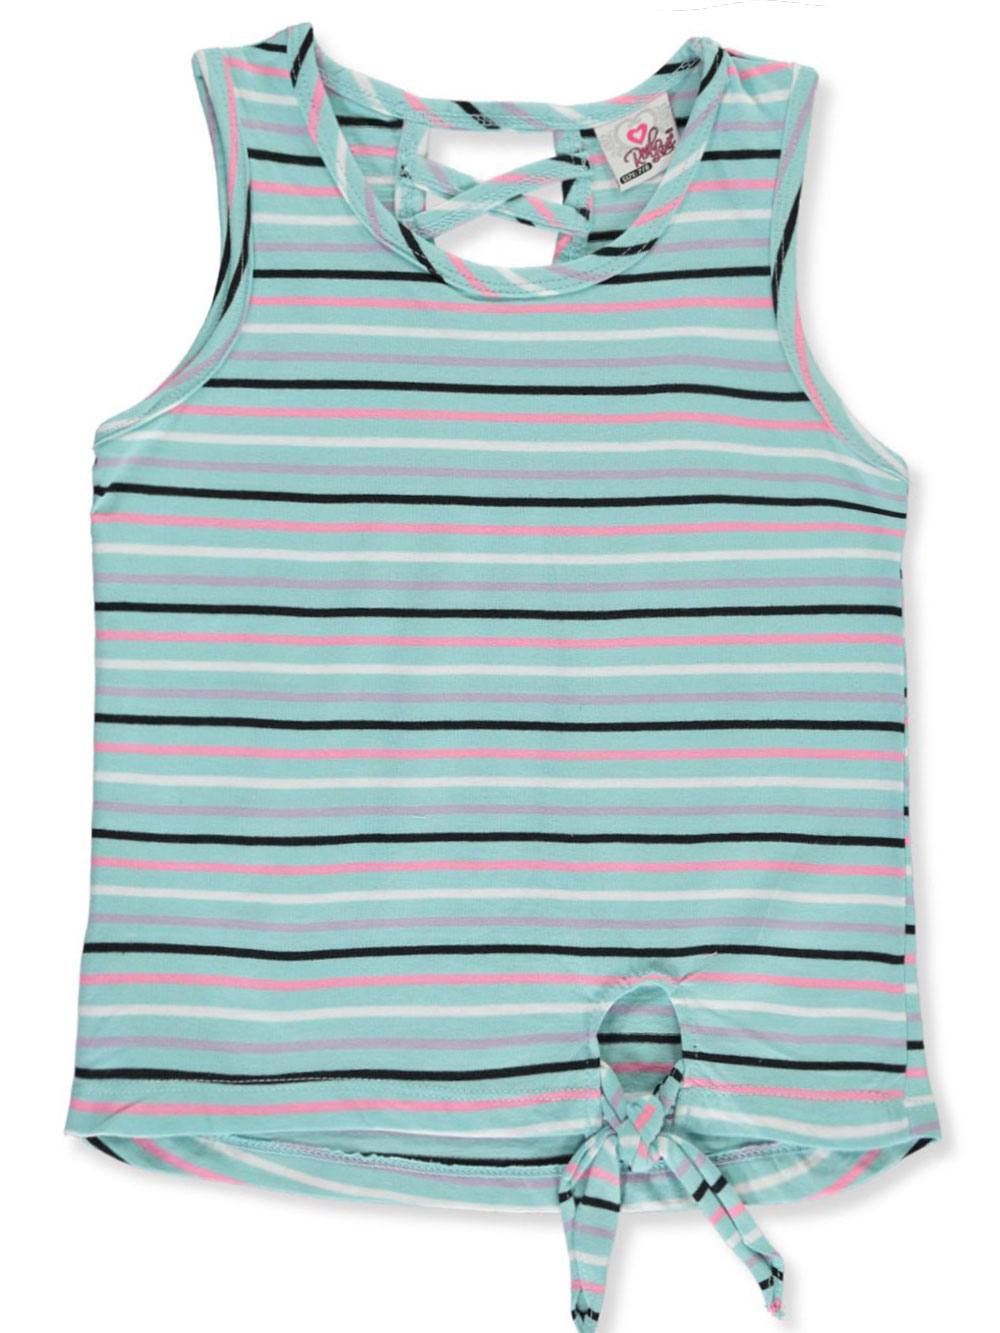 Size 7 Tank Tops for Girls